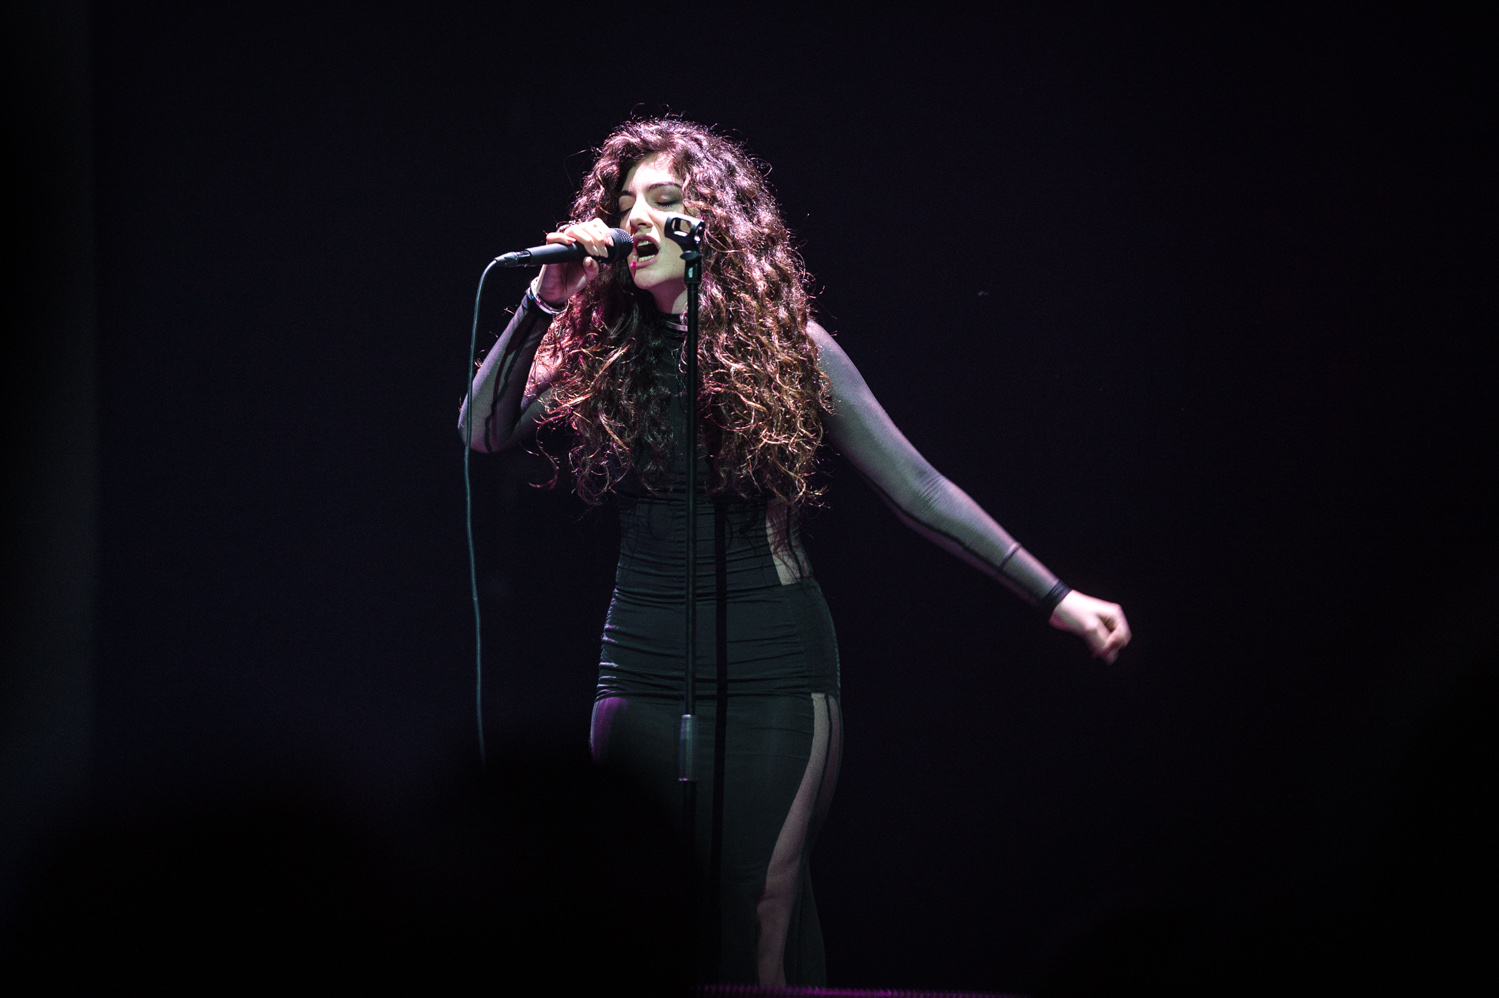 Lorde iHeart Radio_014_photo_©2013 Steve Dykes.jpg